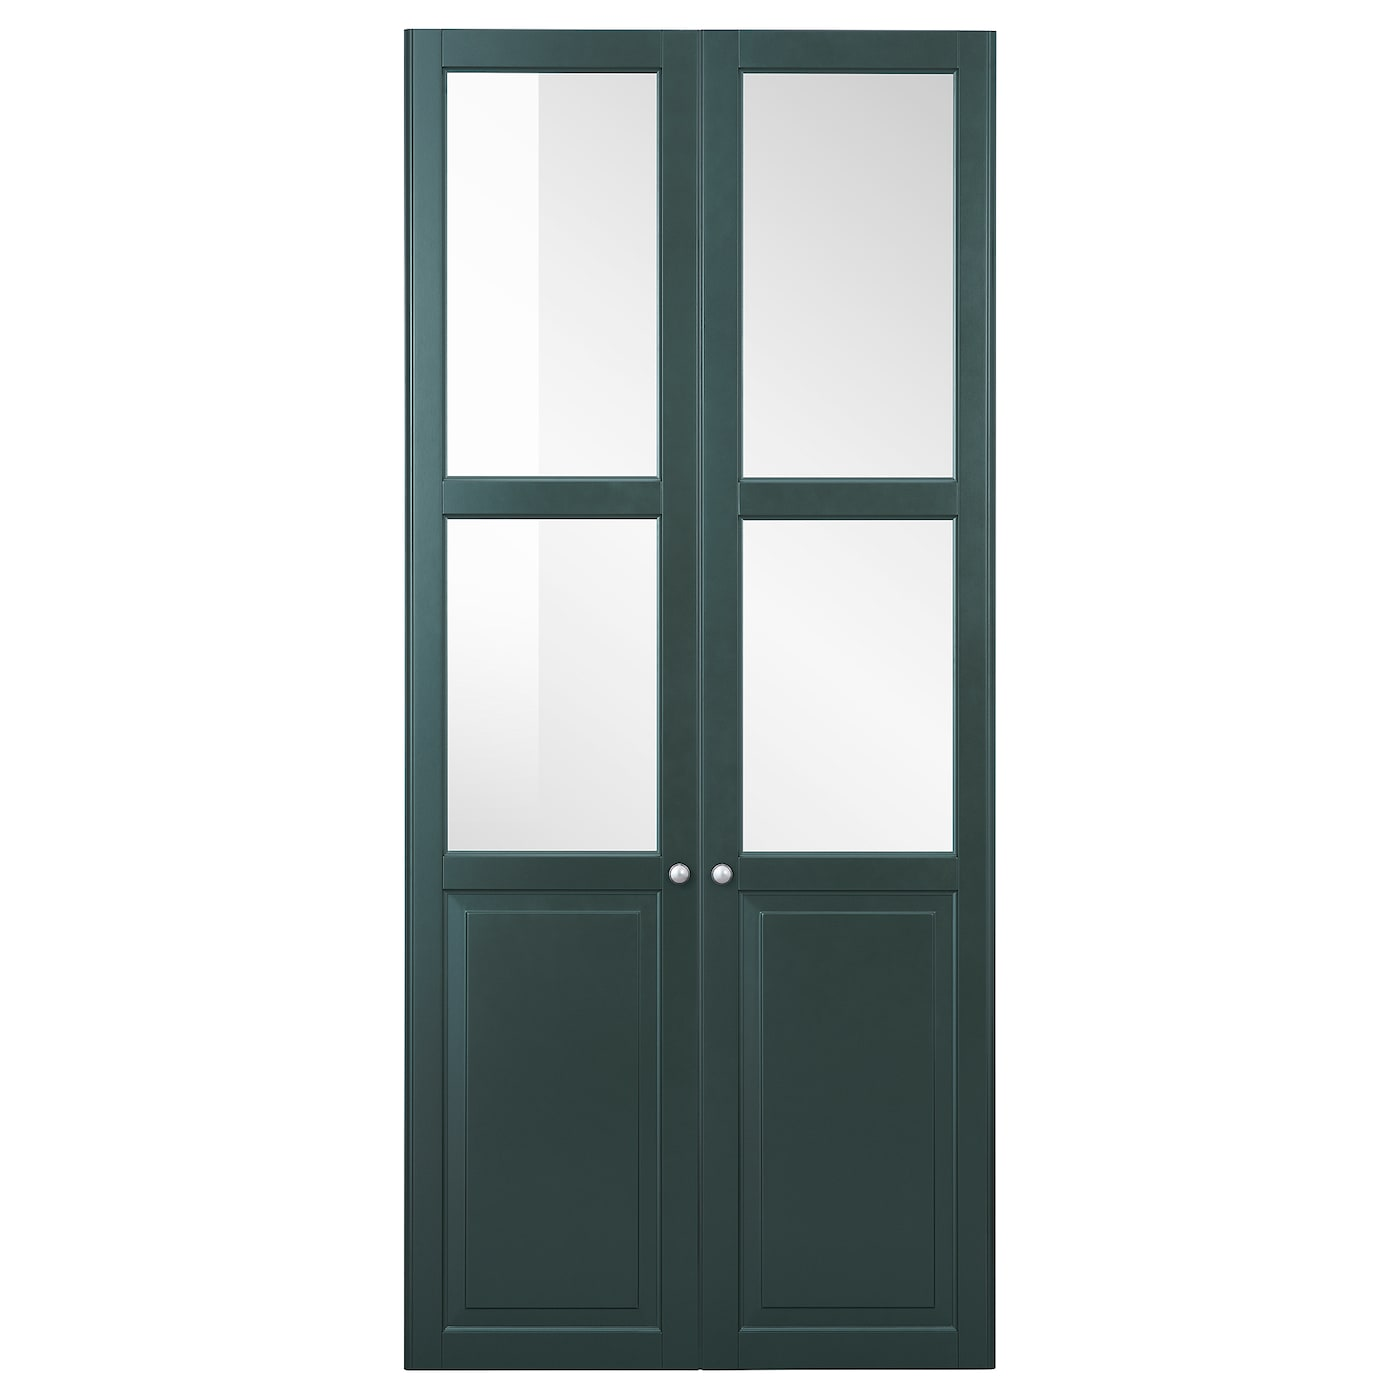 IKEA LIATORP panel/glass door